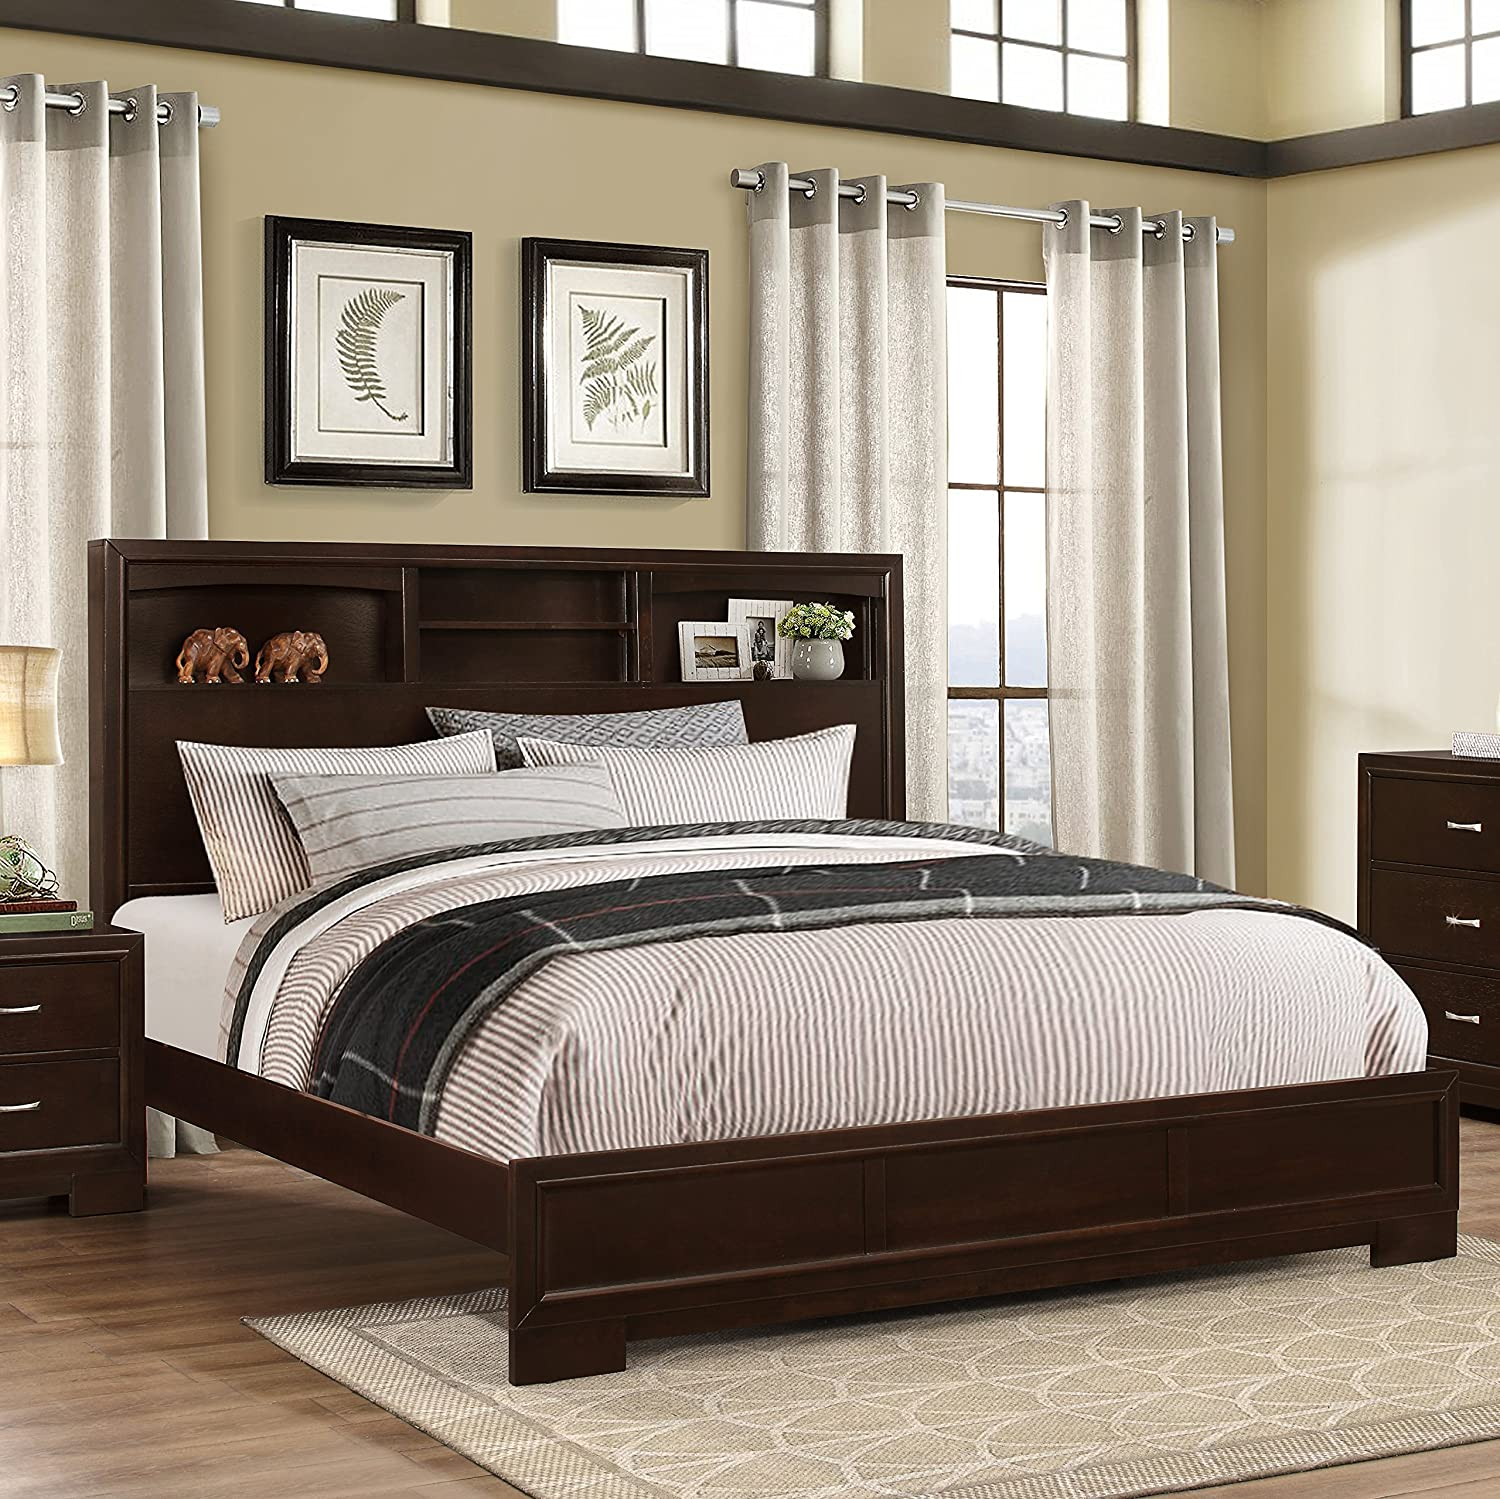 Amazon com  Roundhill Furniture Montana Modern 5 Piece Wood Bedroom Set  with Bed  Dresser  Mirror  Nightstand  Chest  King  Walnut  Kitchen   Dining. Amazon com  Roundhill Furniture Montana Modern 5 Piece Wood